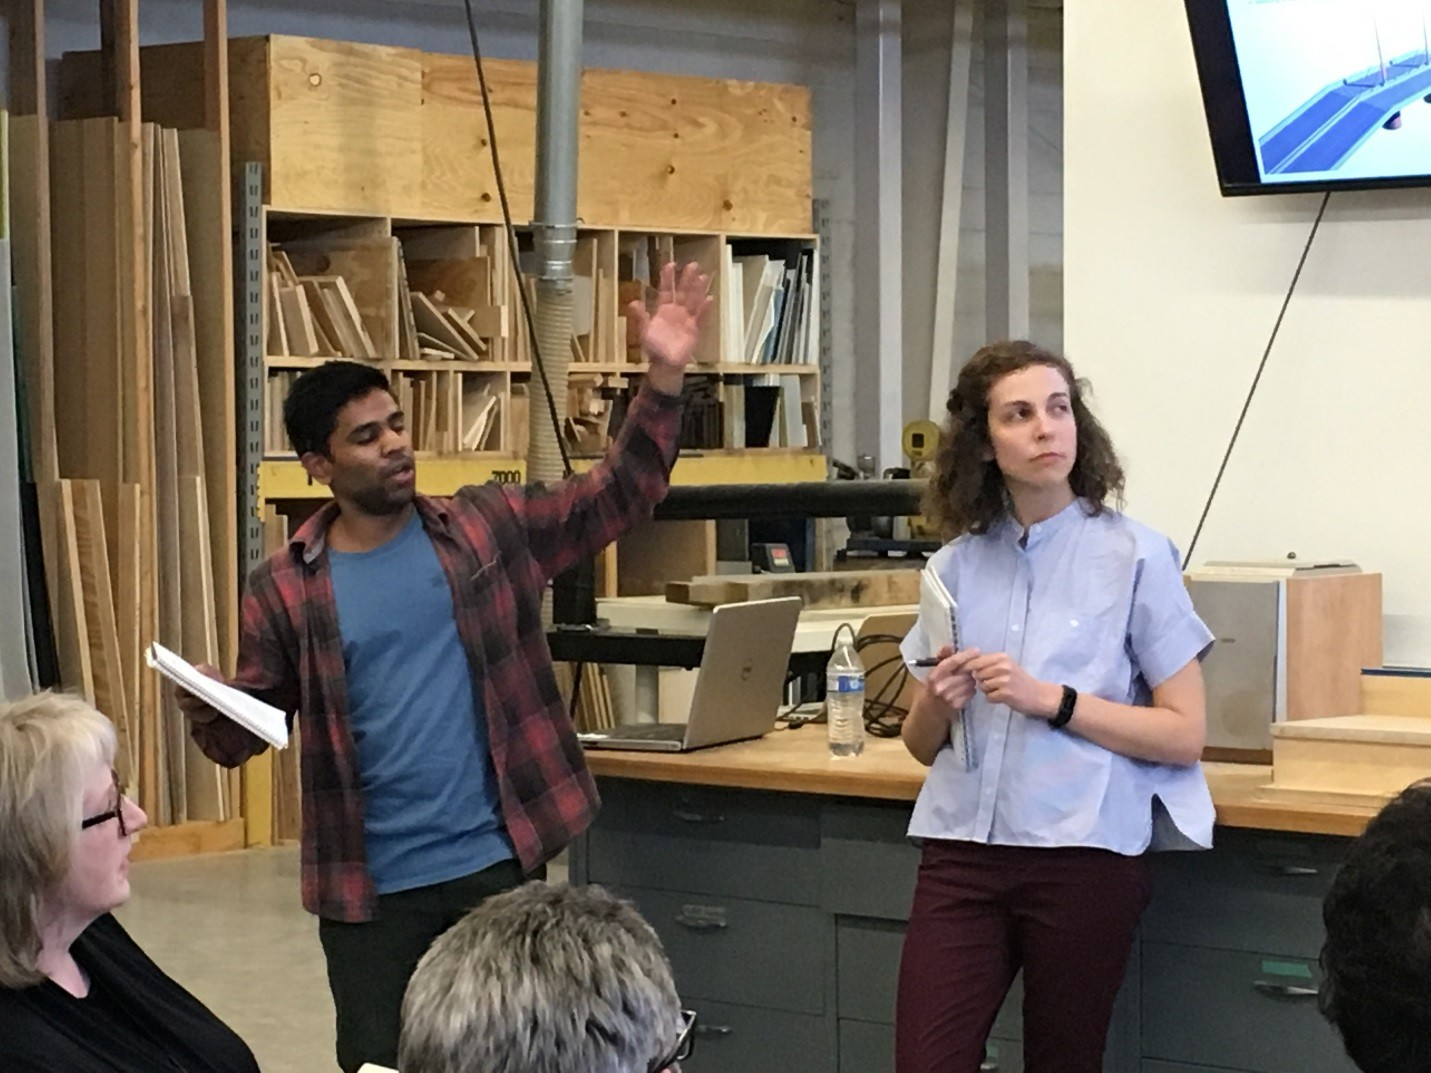 Georgia Tech students Amrith Nair (MS CEE) and Emily Wirt (M ARCH) present their design ideas to the Re-Wind visiting team